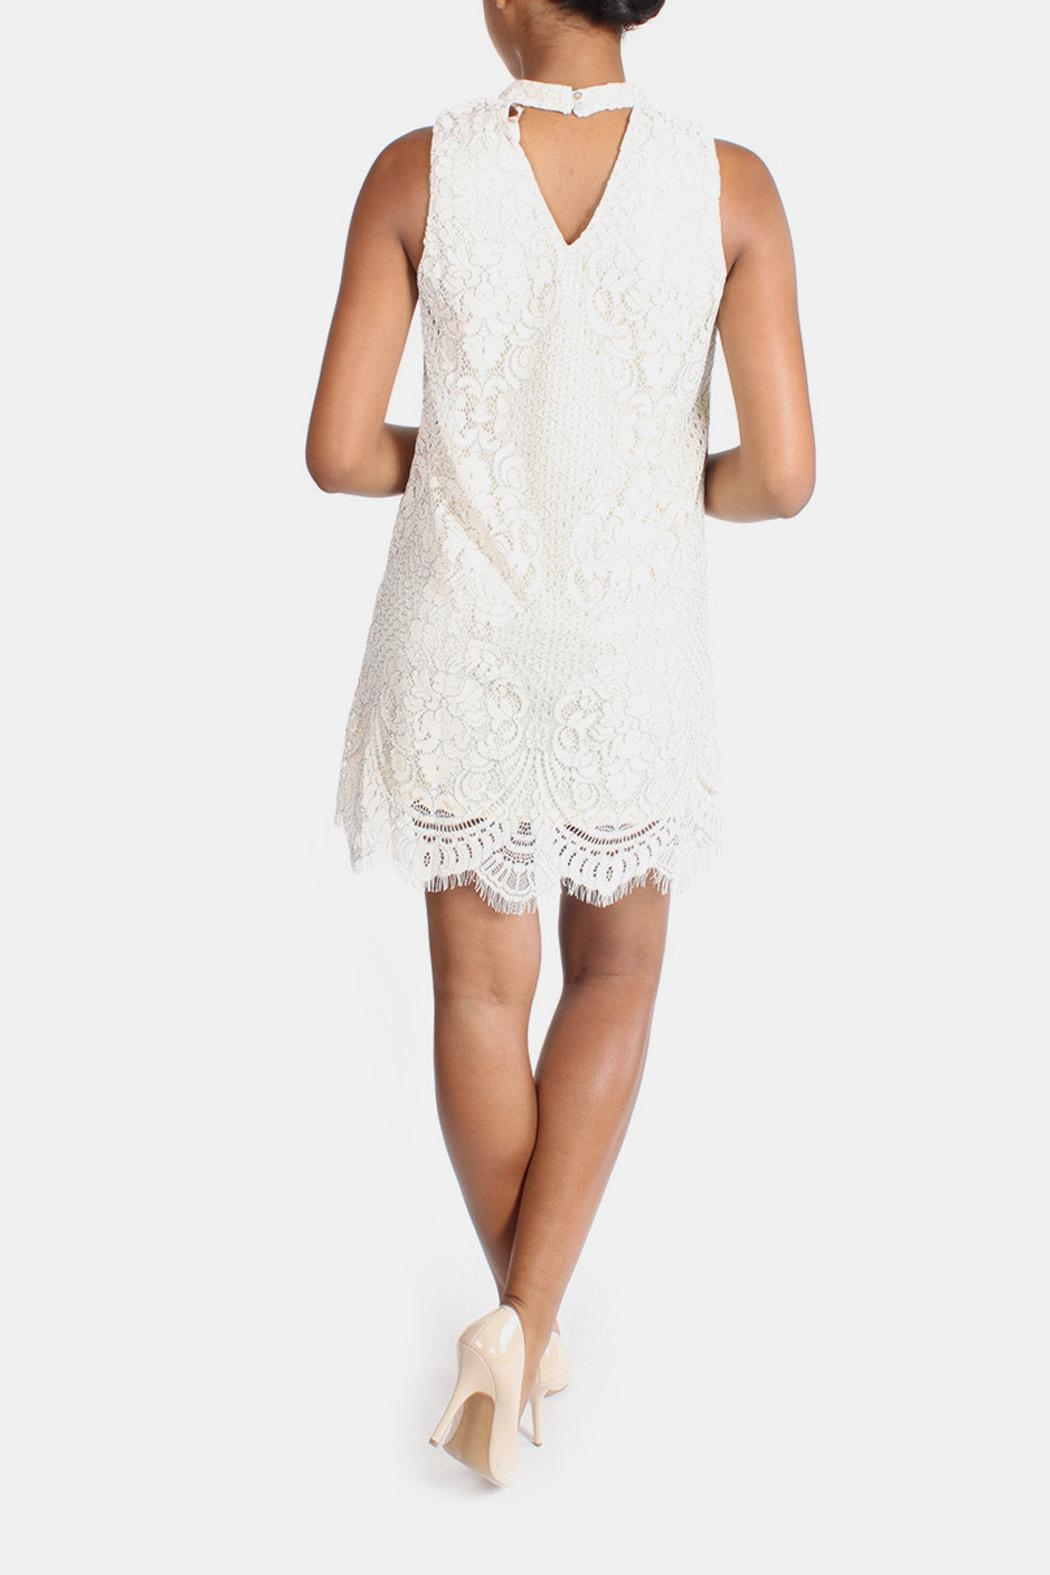 Skies Are Blue Cream Lace High-Neck-Dress - Back Cropped Image